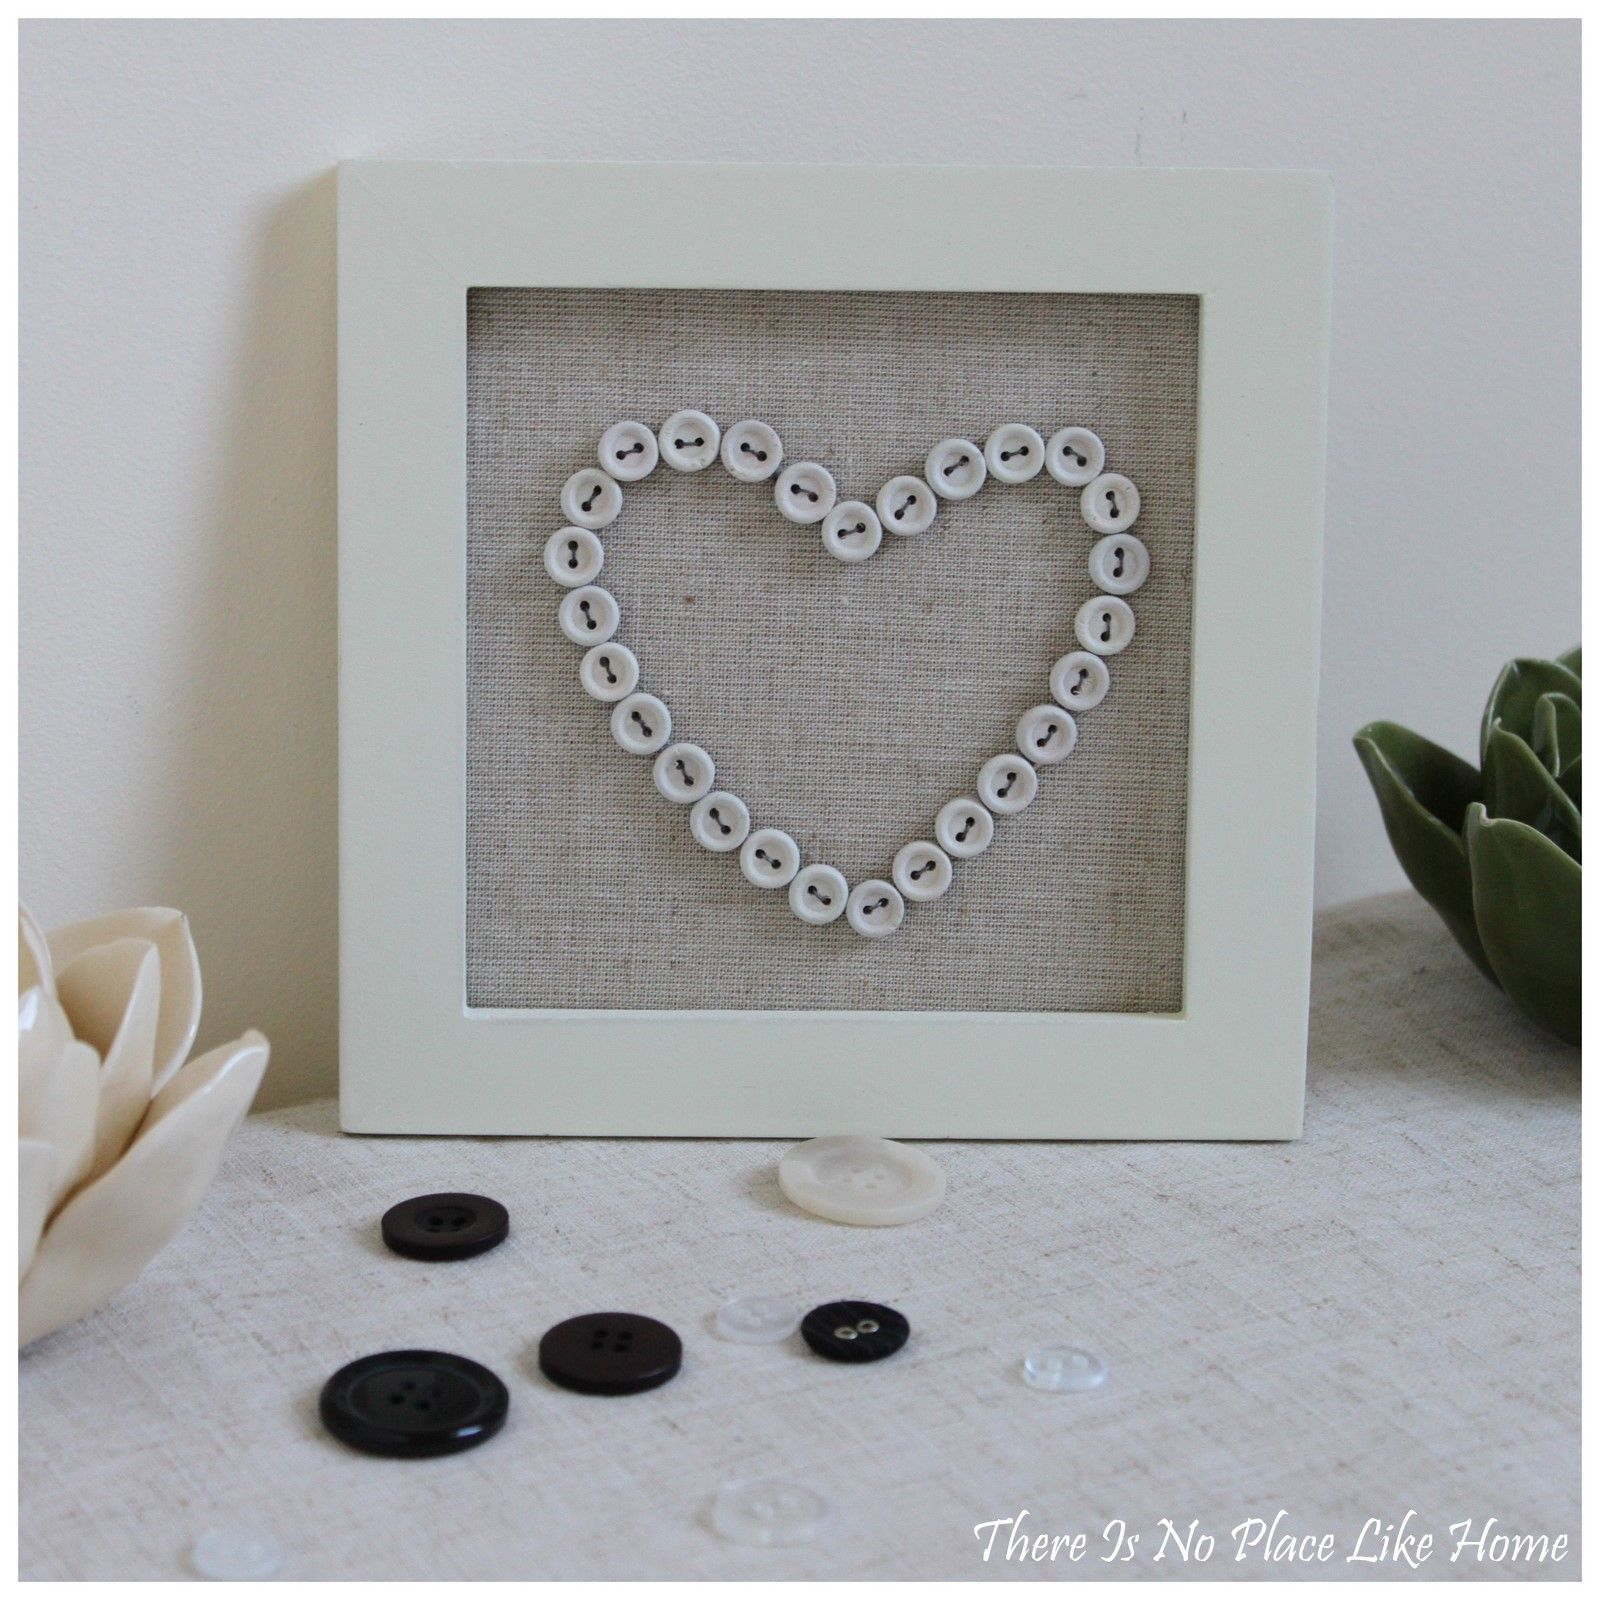 so sweet! It will be perfect for my bedroom!